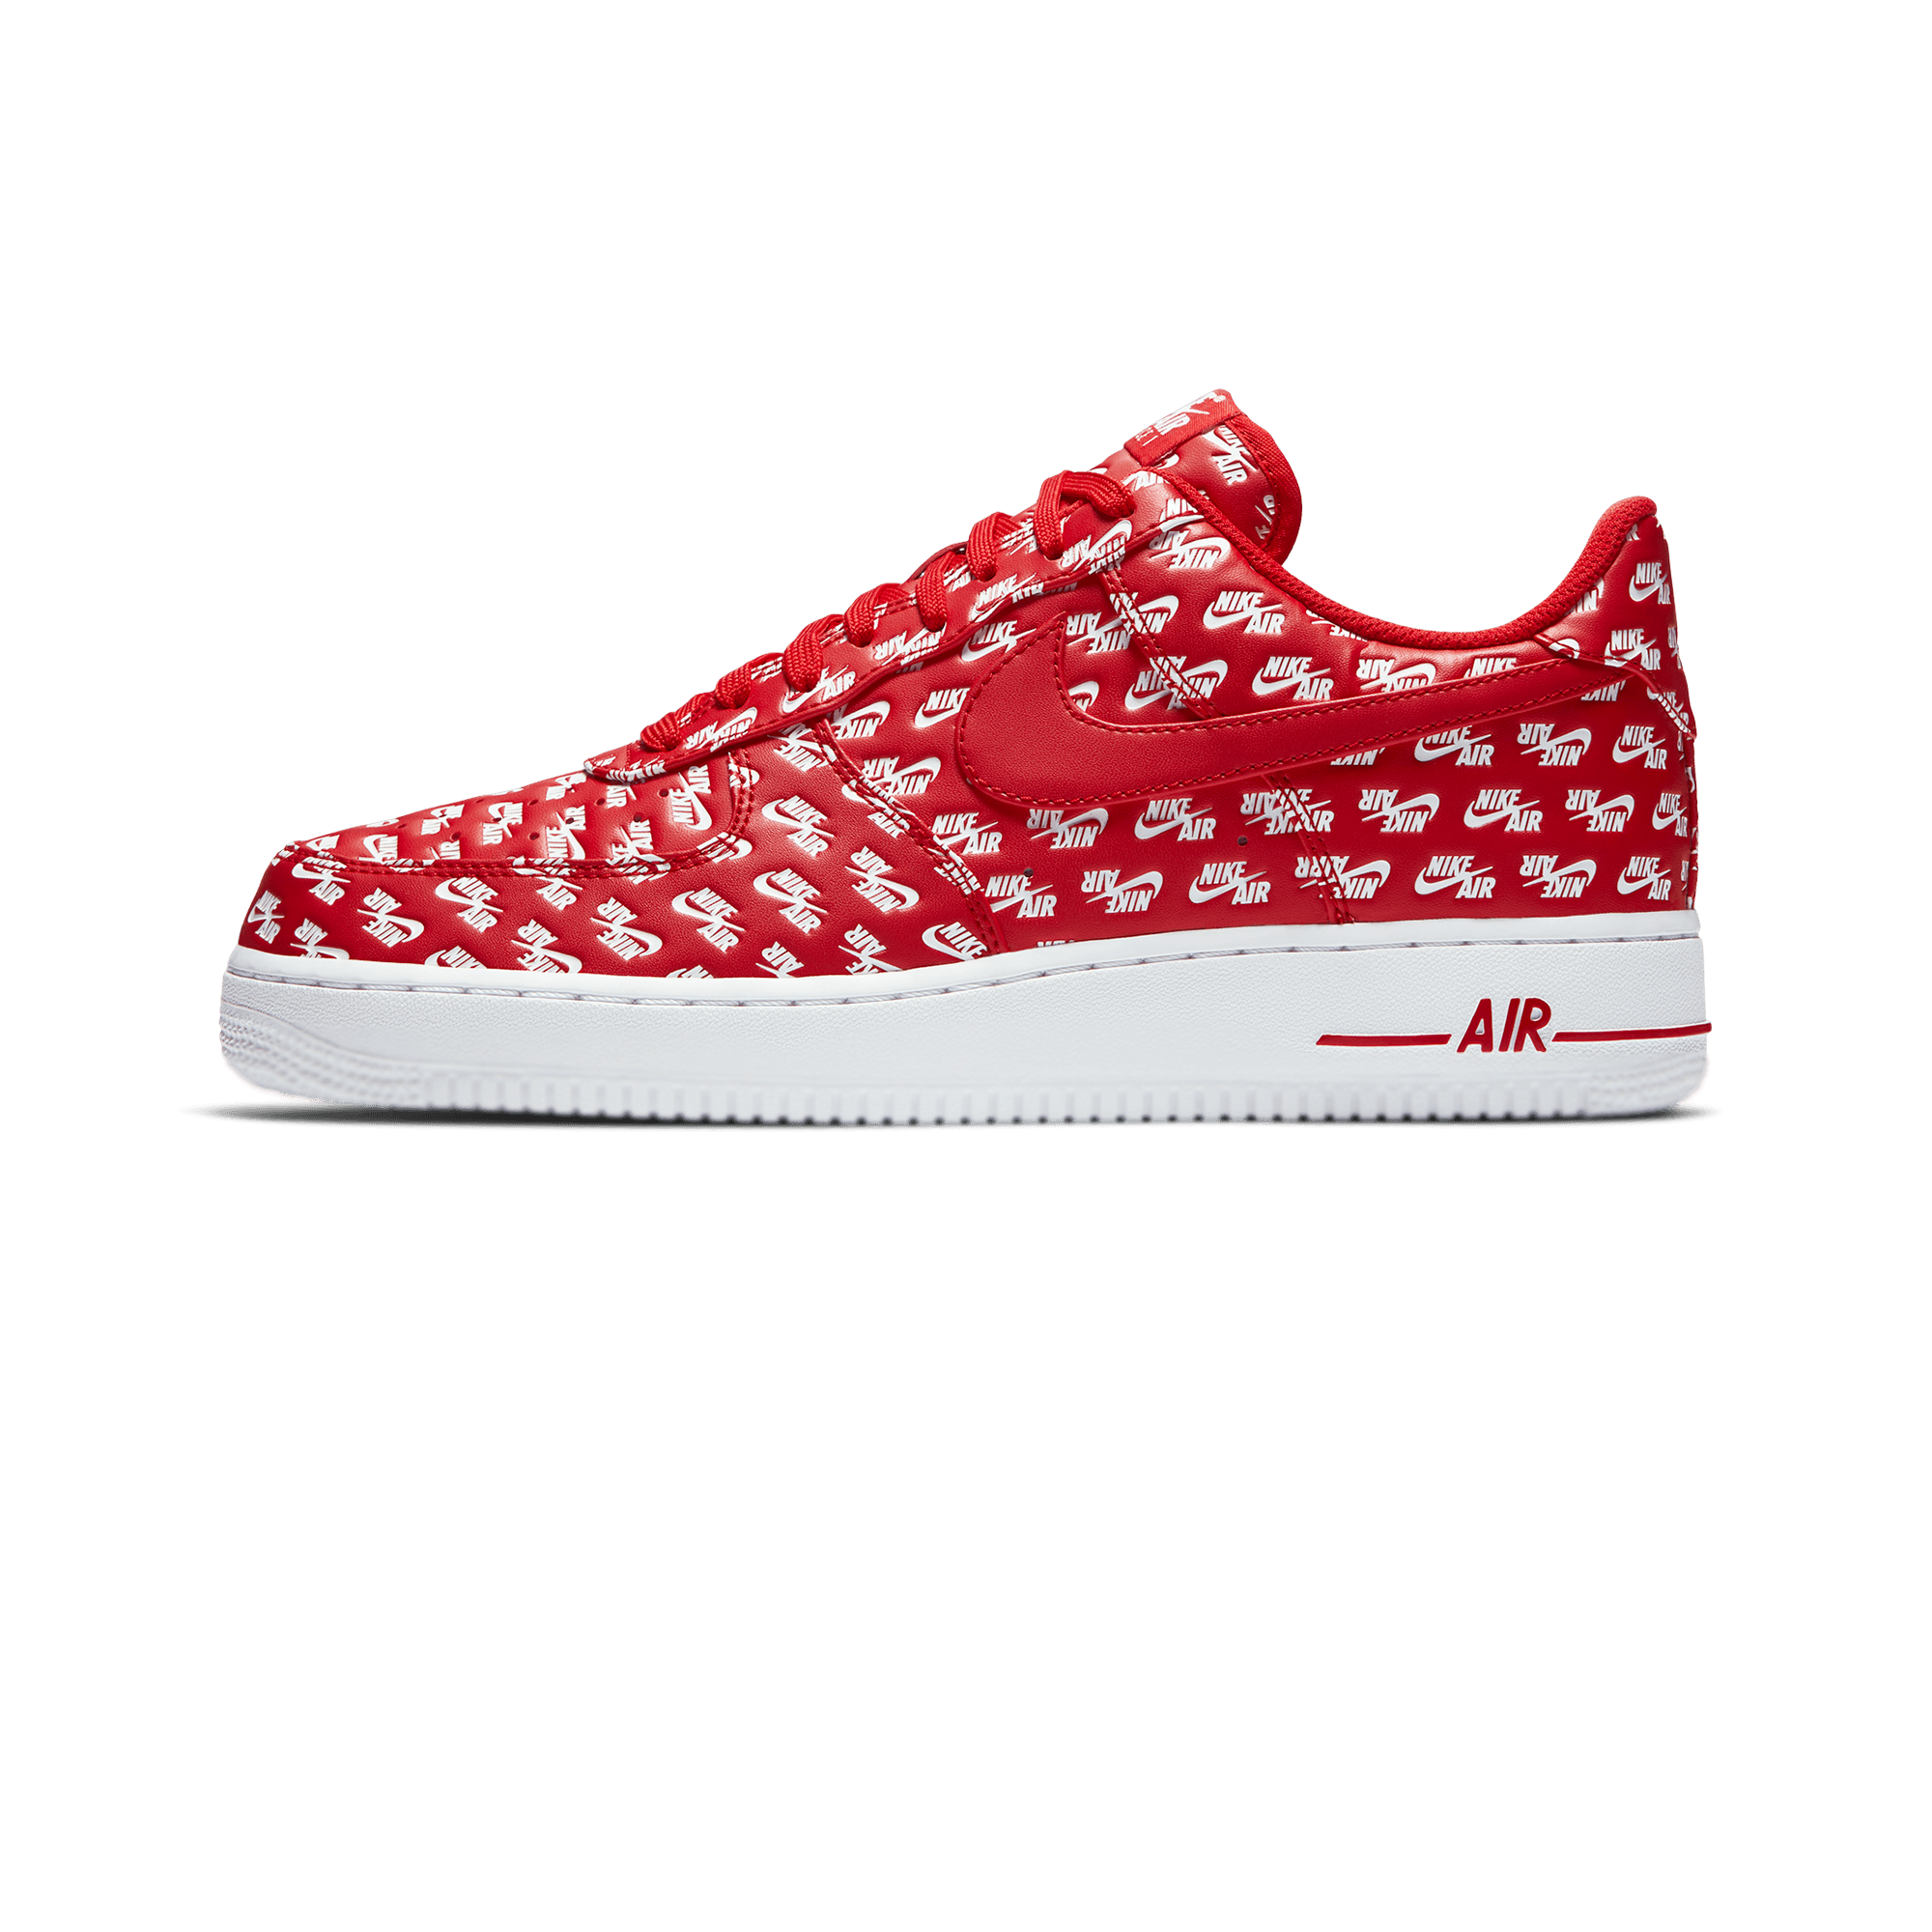 Air Force '07 QS red/white